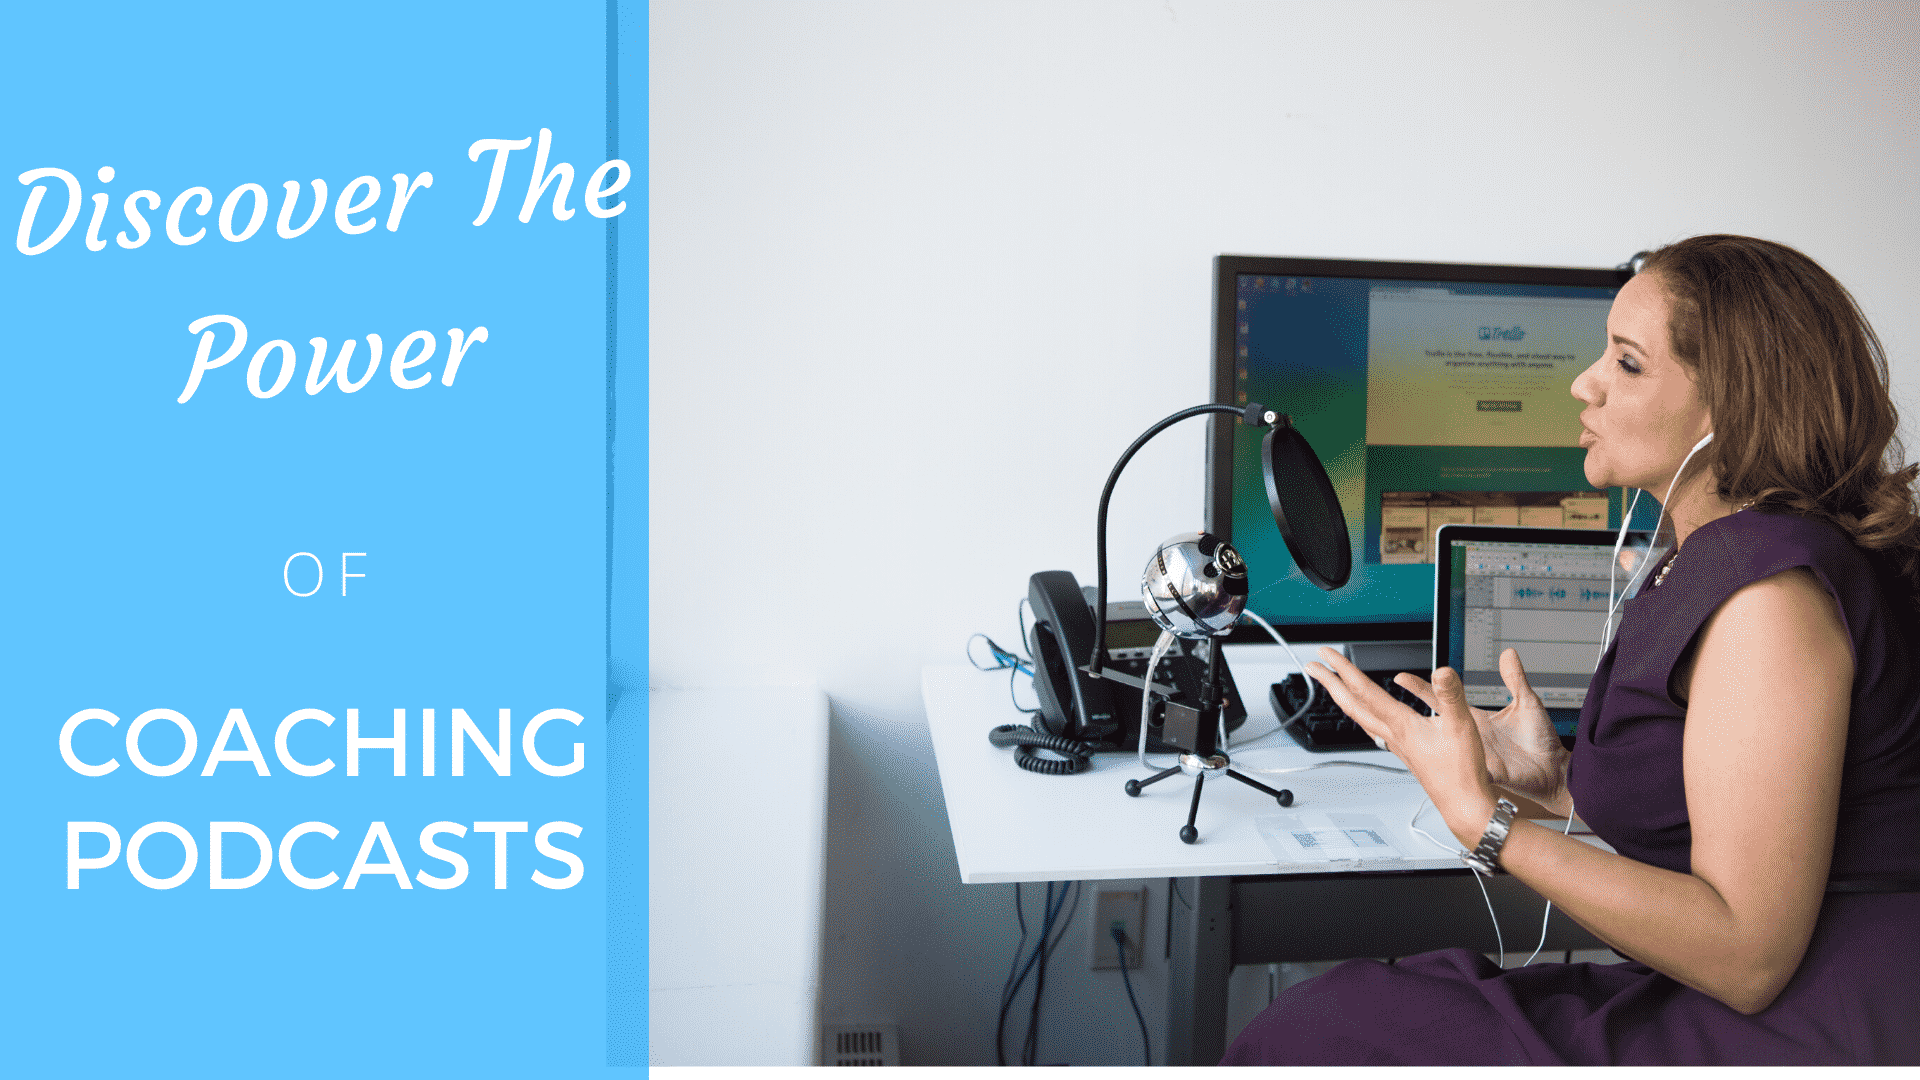 Discover the Power of Coaching Podcast coaching podcast